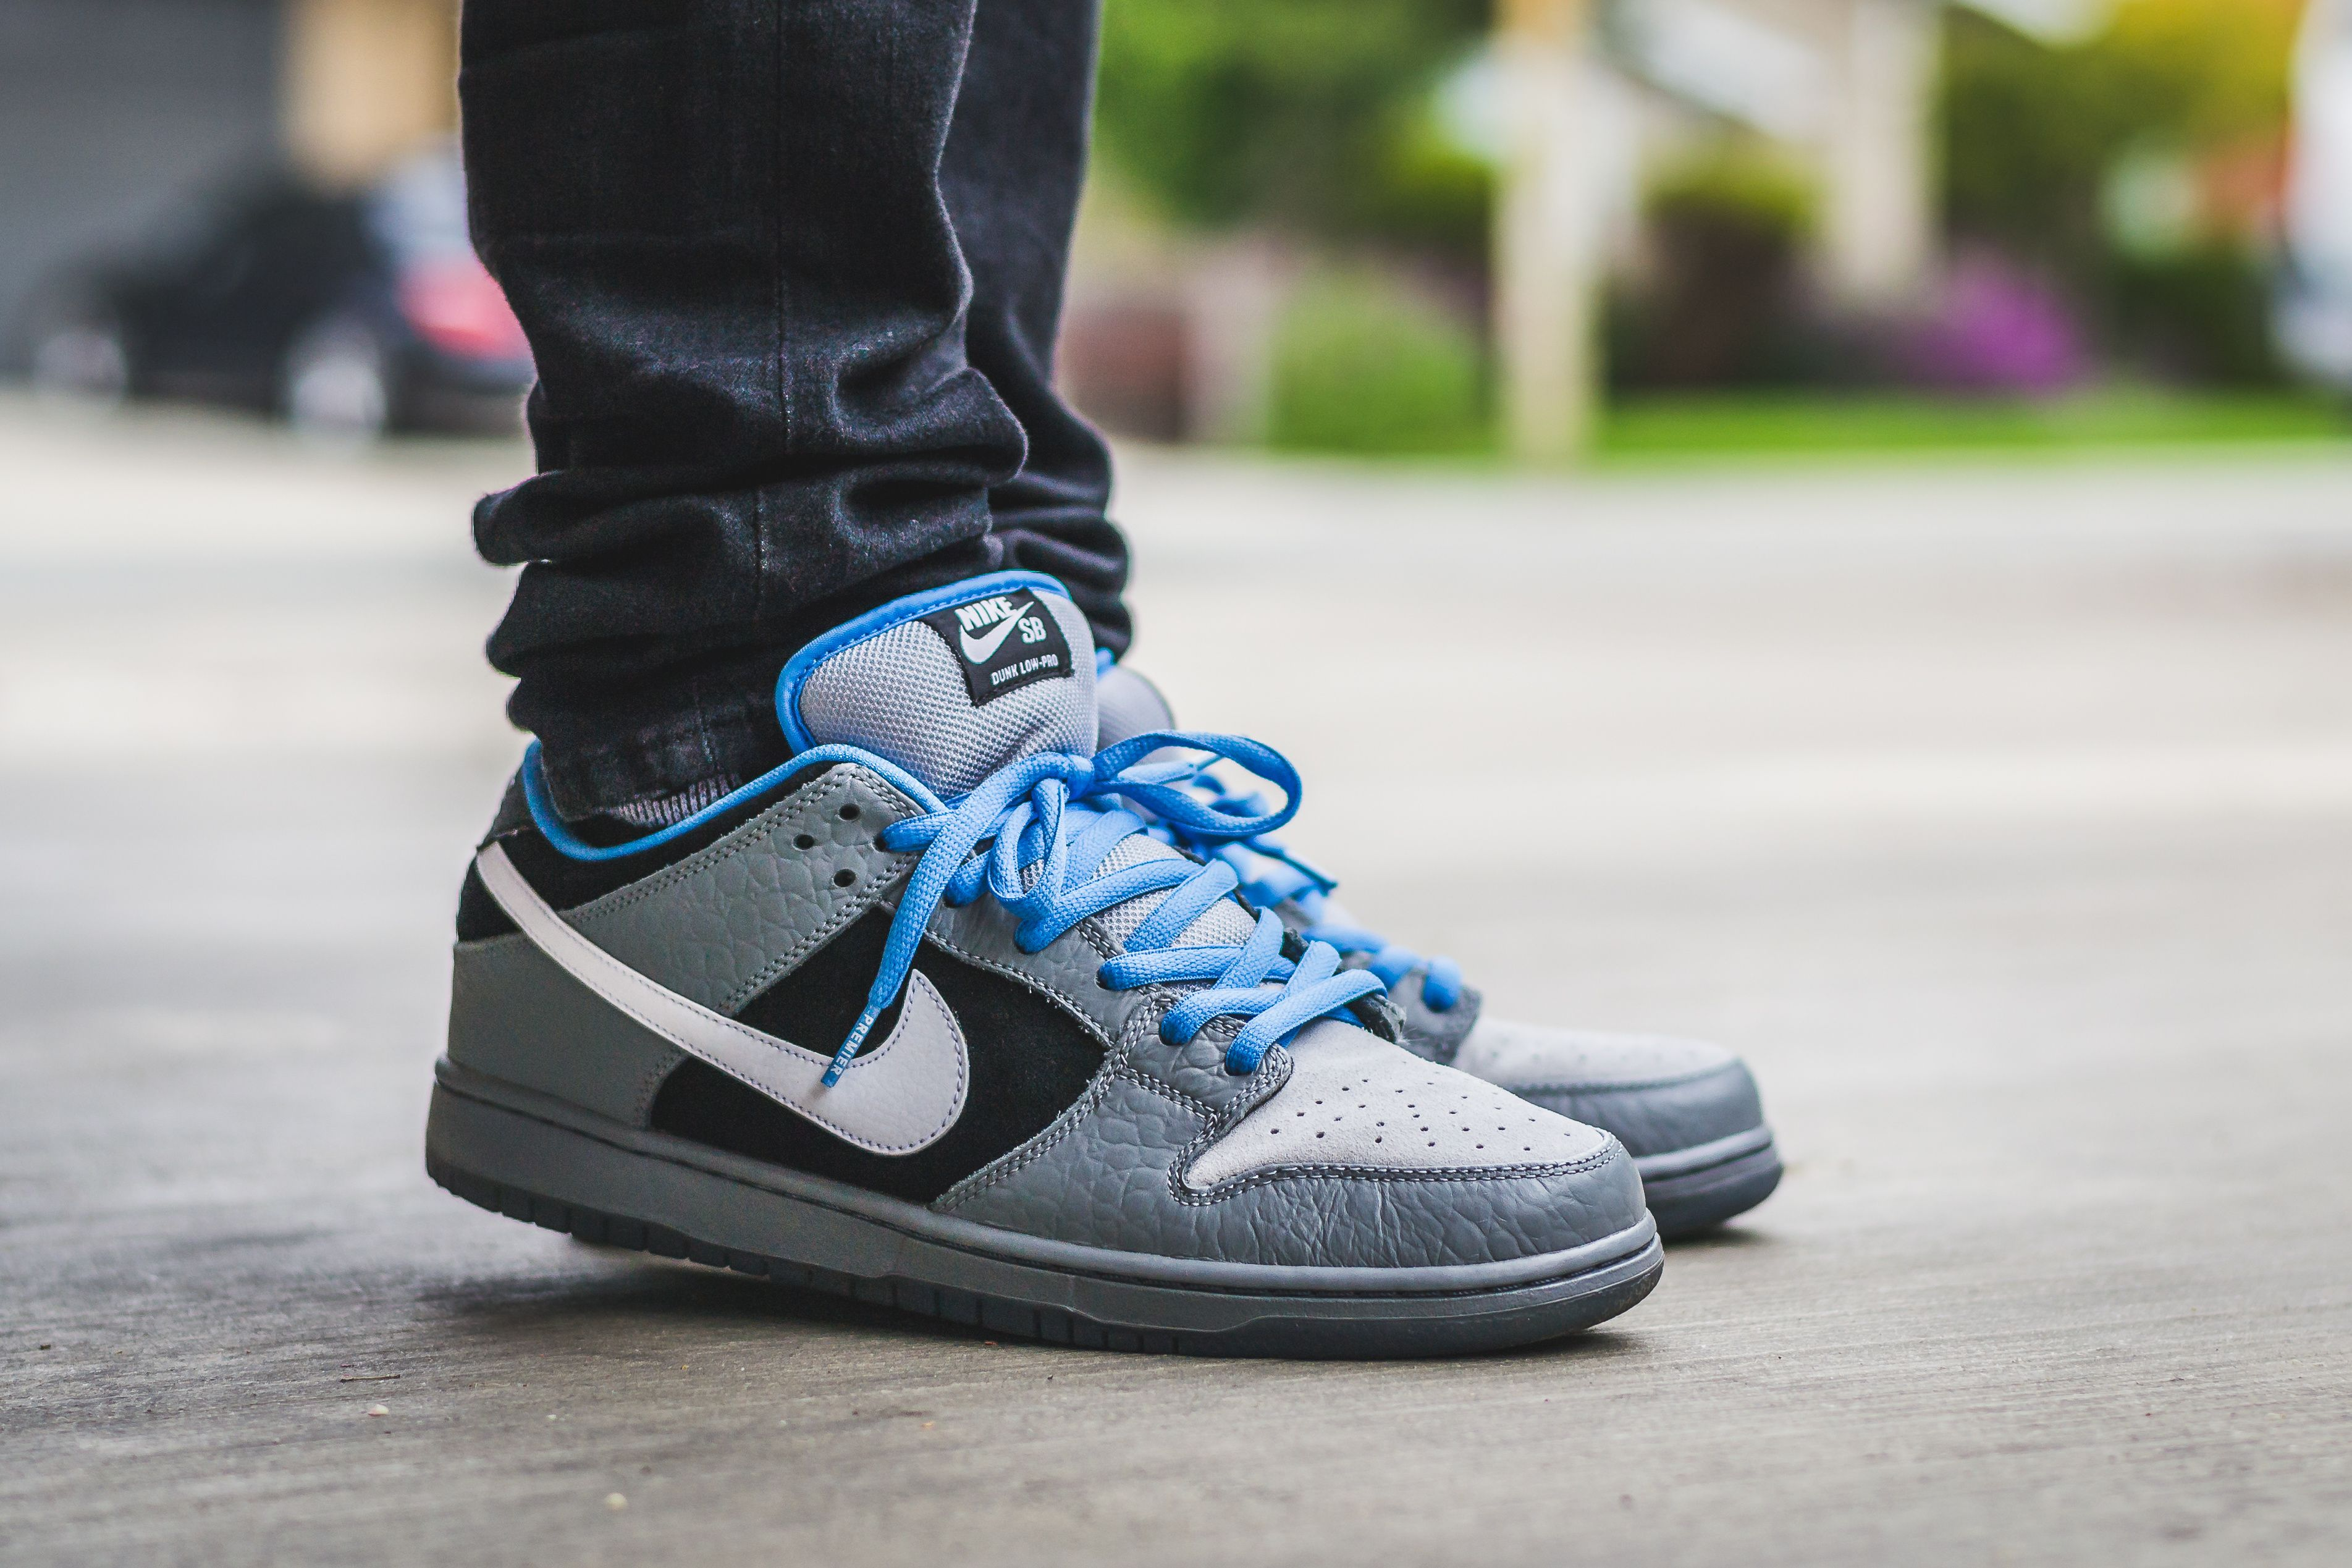 premium selection 00f9e a3577 WDIWT - See my on foot video review of these Nike Dunk Low SB Petoskey +  where to find em